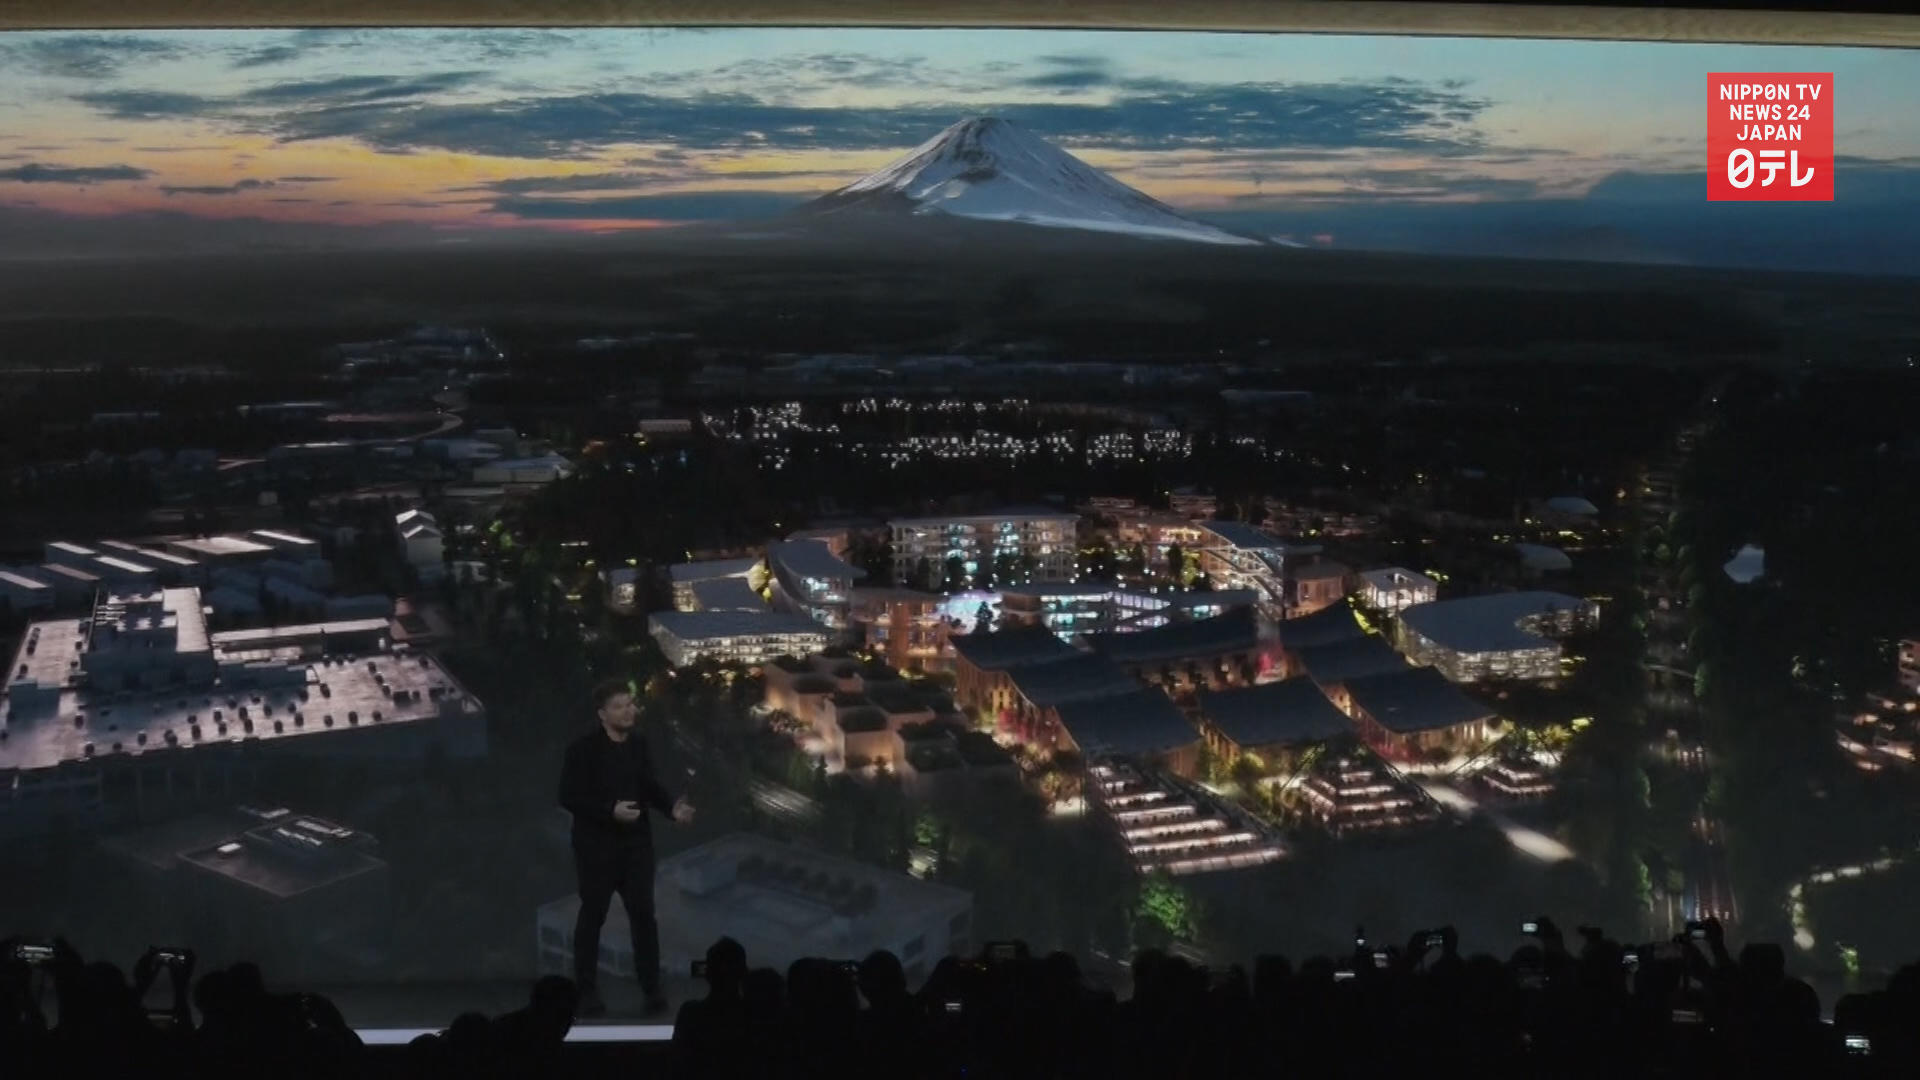 Toyota, NTT agree on tie-up for smart city project